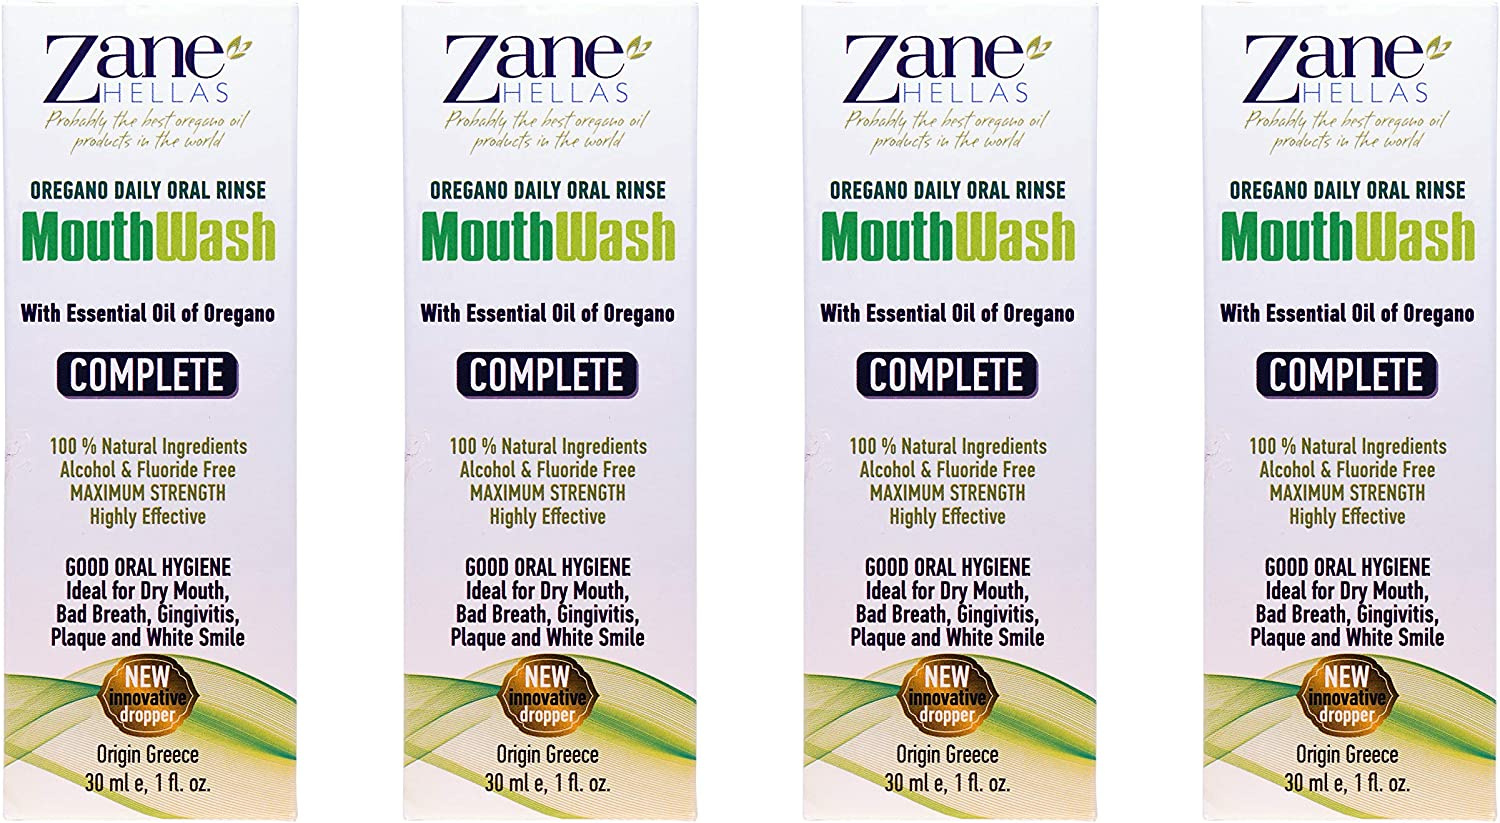 Zane Hellas MouthWash.Oral Rinse with Oregano Oil Power.Ideal for Gingivitis,Plaque,Dry Mouth,and Bad Breath. Alcohol and Fluoride Free.100% Herbal Solution.4 fl.oz.-120ml.Buy 3 get 1 Free.